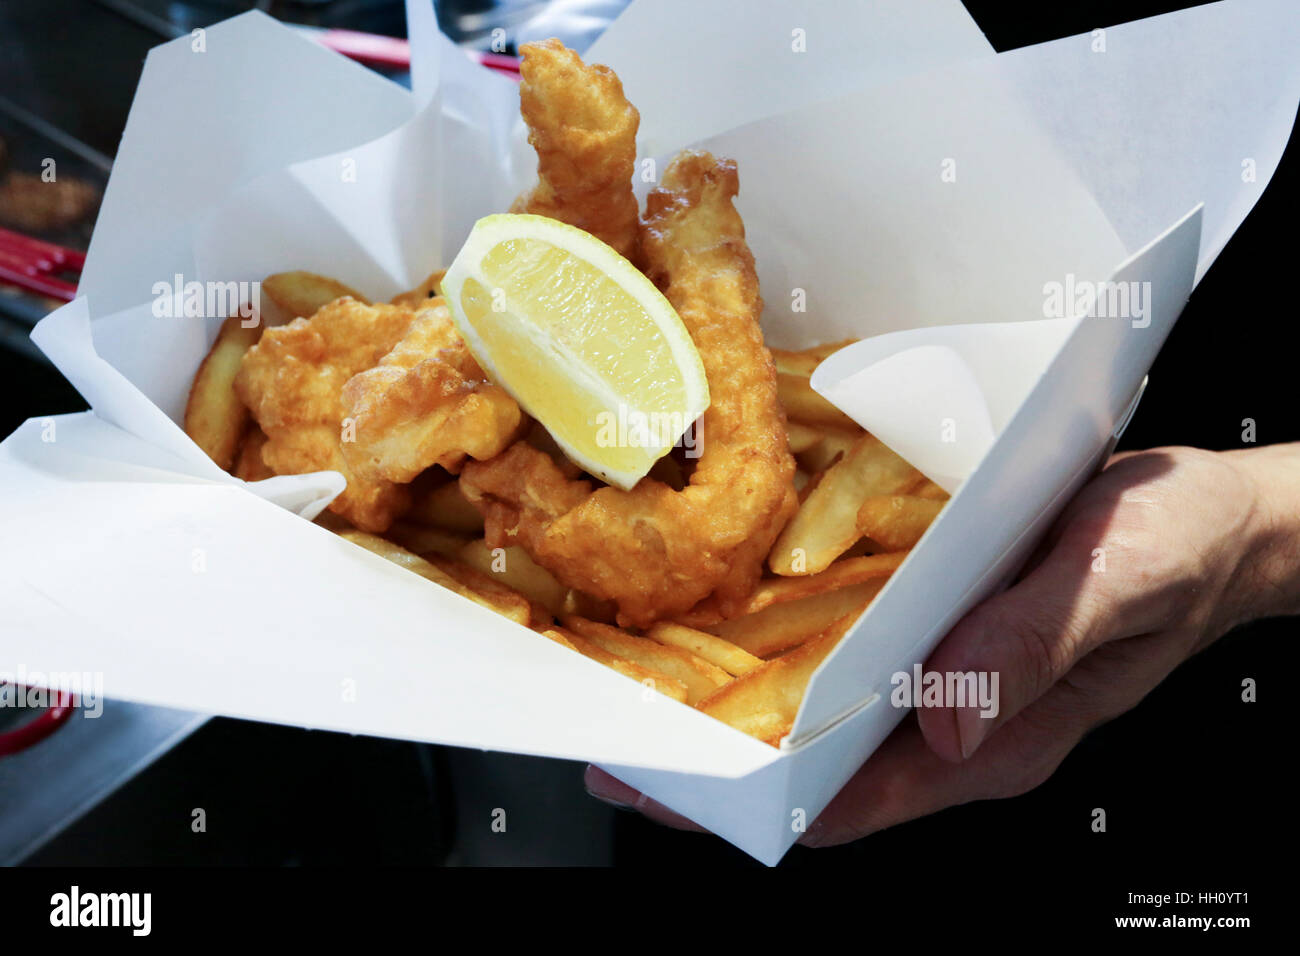 Fish and chips snack in cardboard box - Stock Image